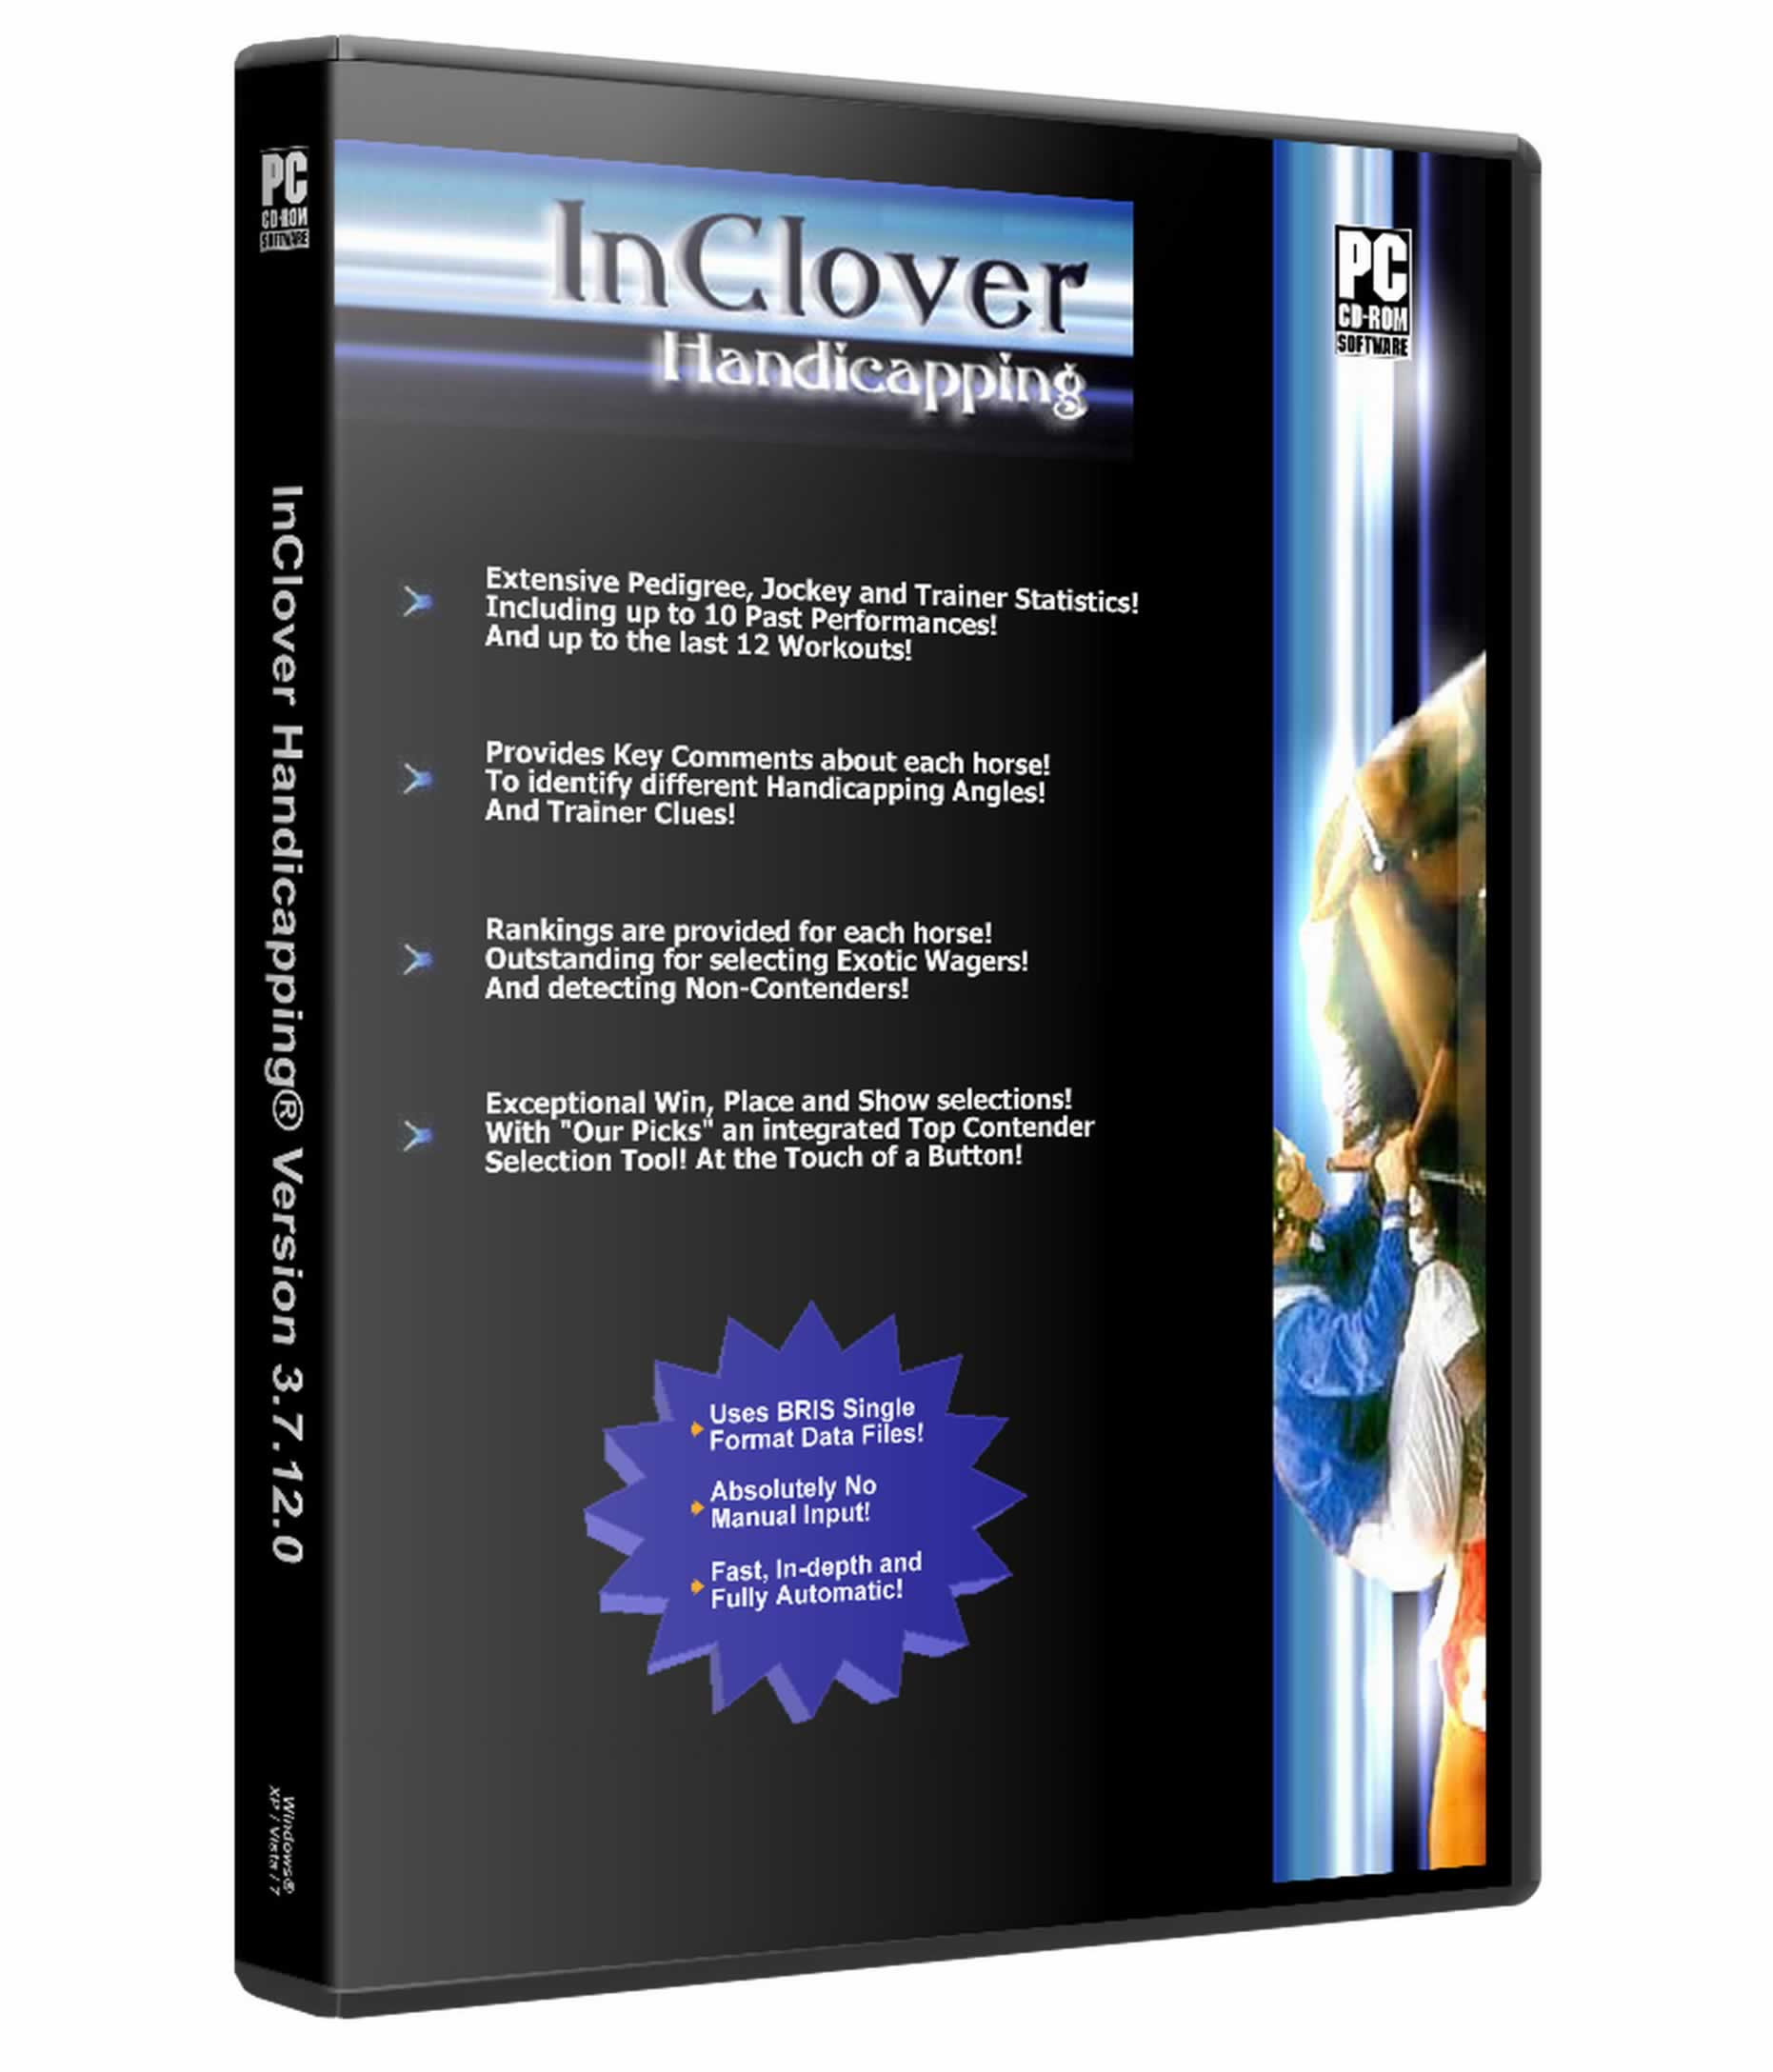 InClover Handicapping Software disc and case